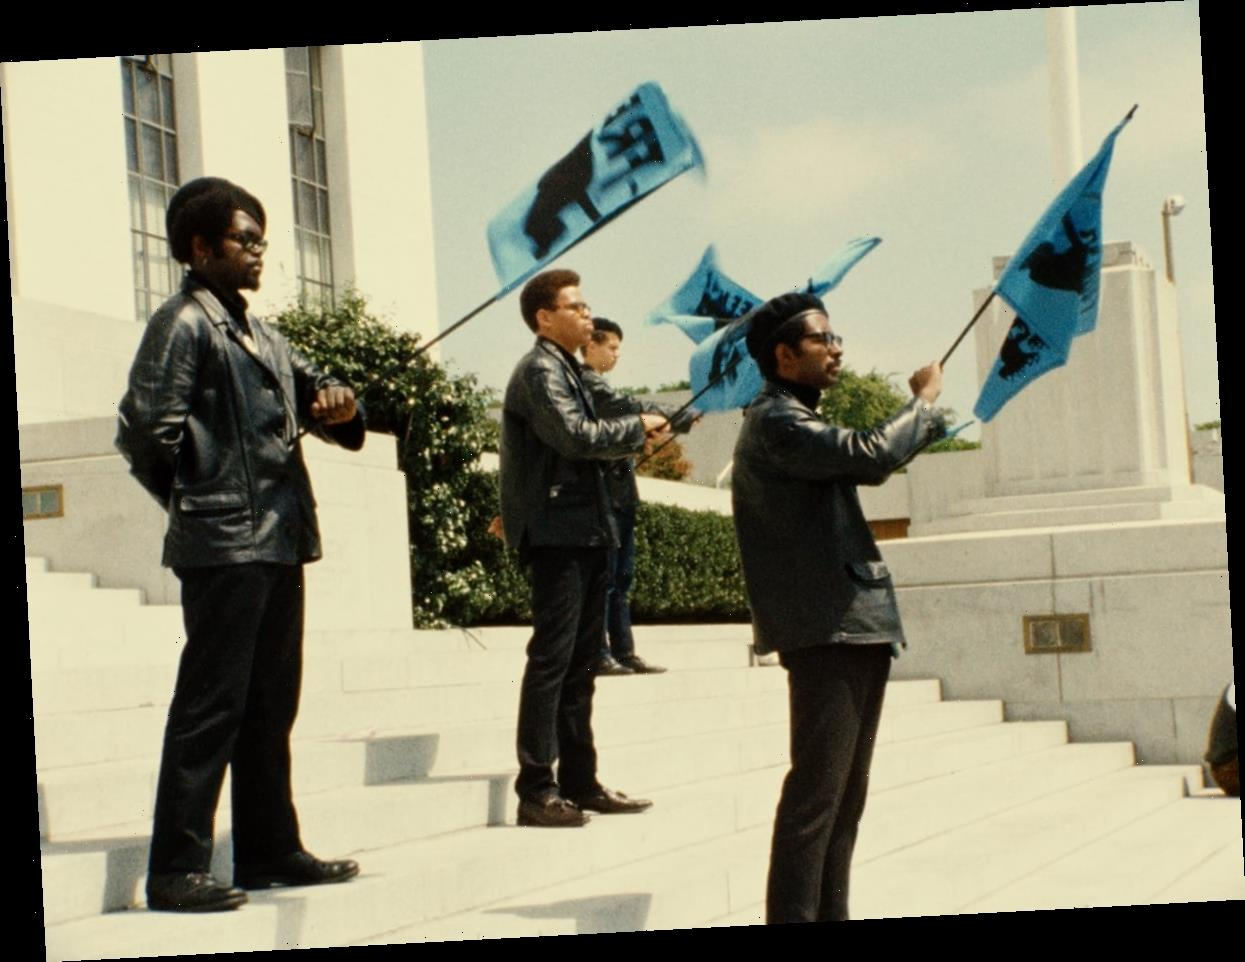 Stream of the Day: Agnes Varda's 'Black Panthers' Documentary Is Timelier Than Ever